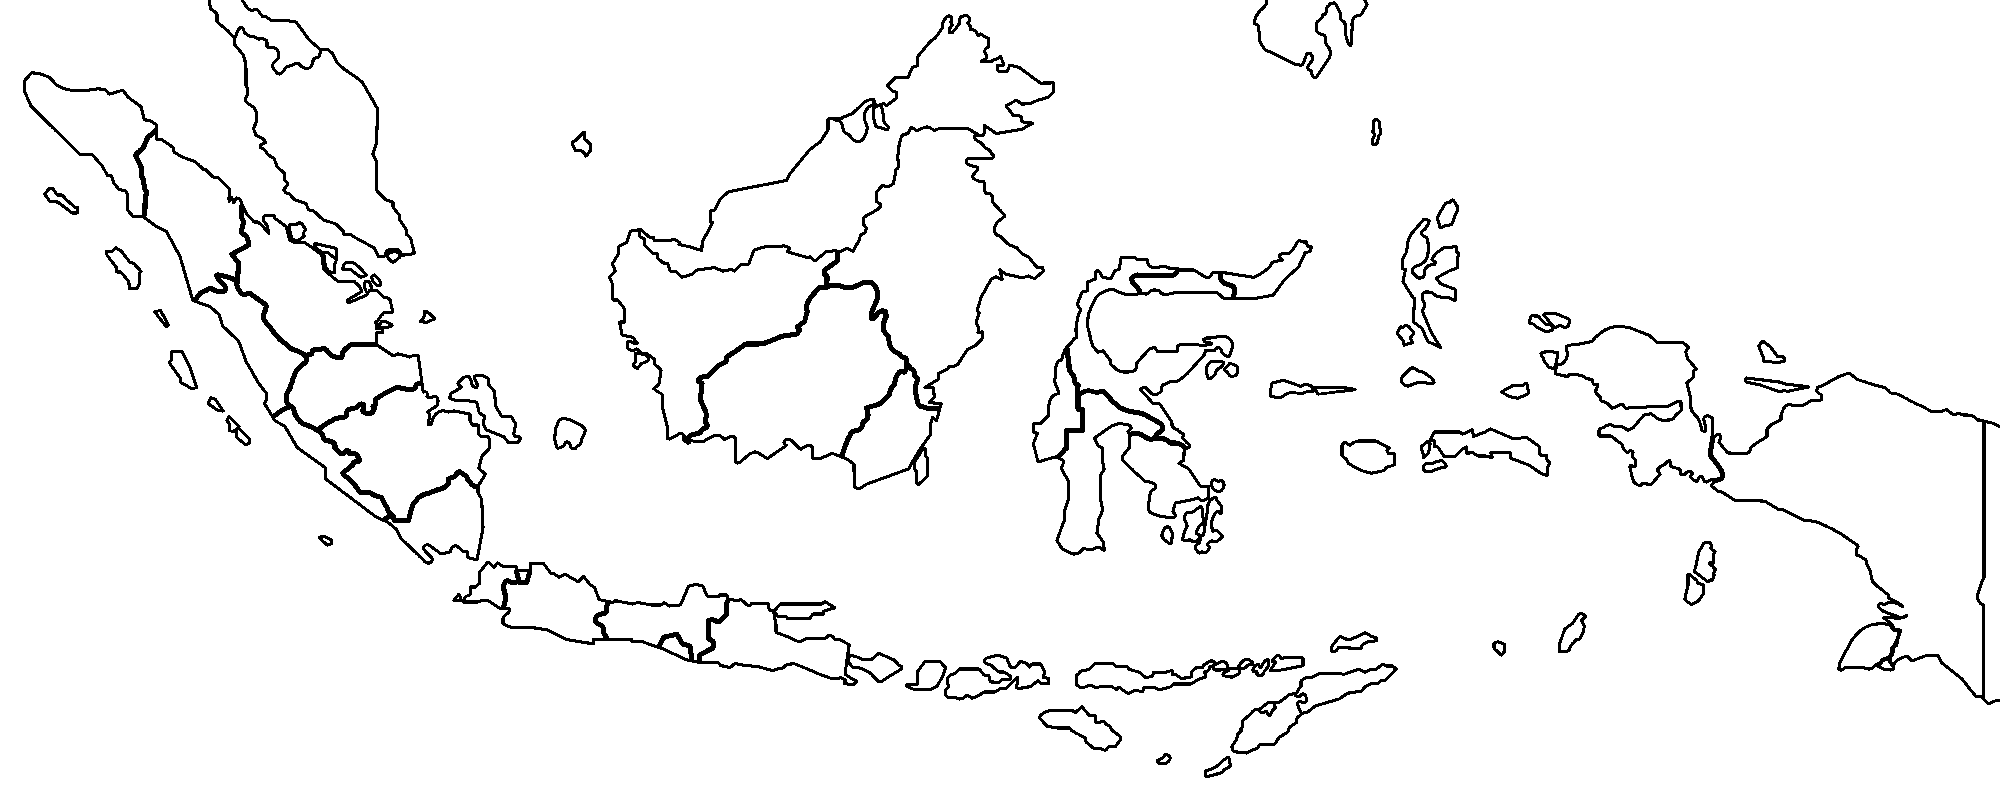 Indonesia Provinces Blank